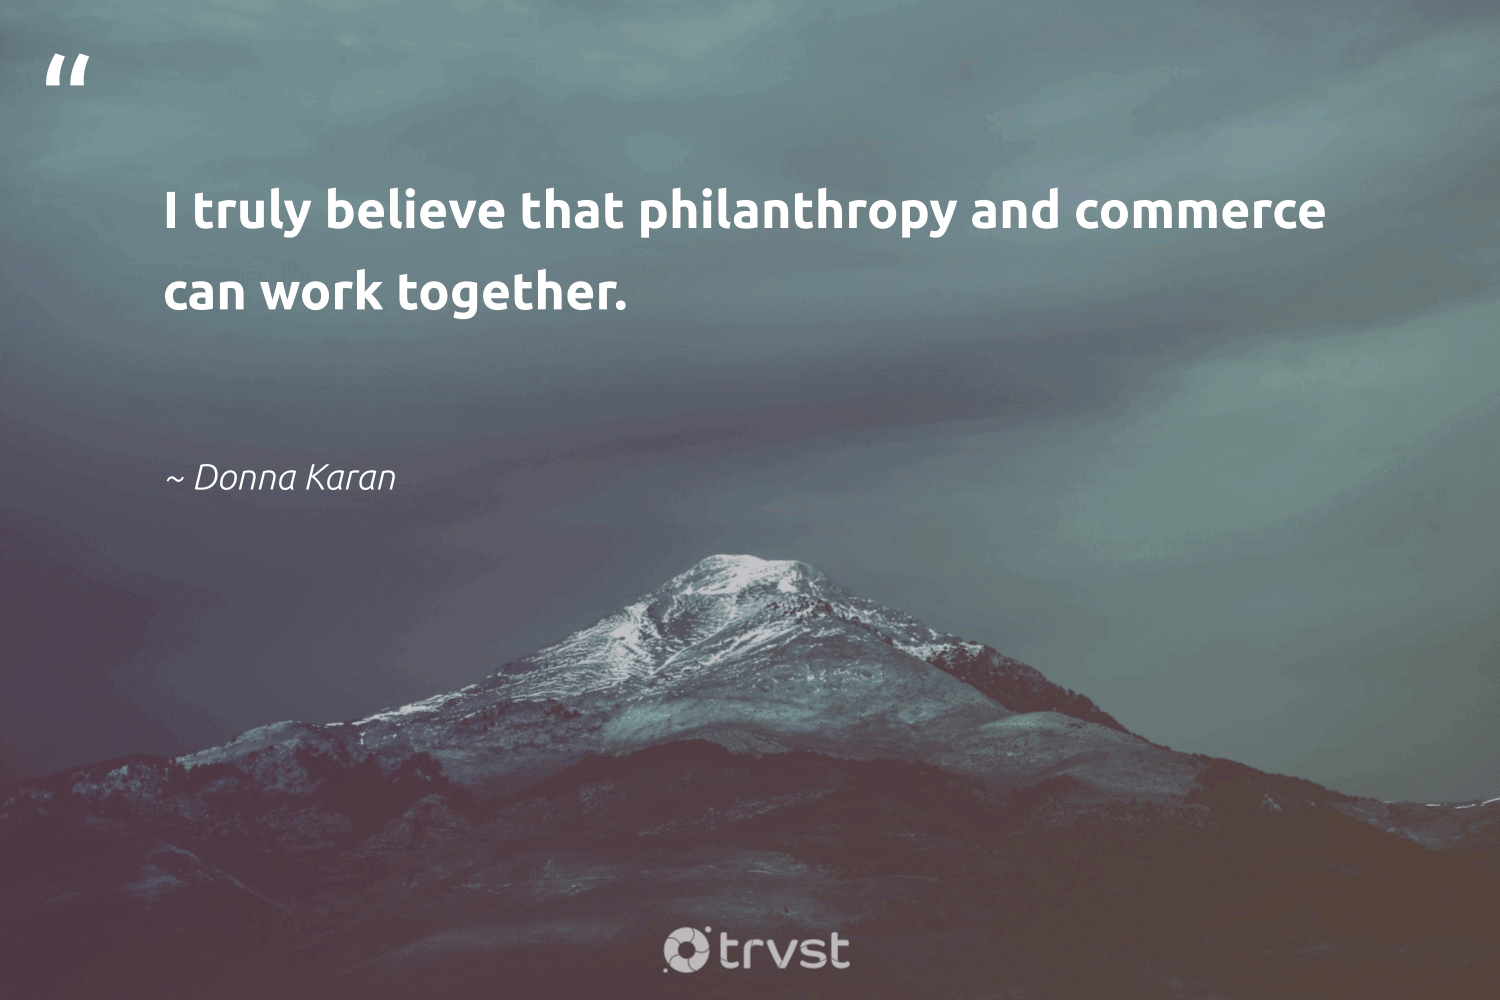 """""""I truly believe that philanthropy and commerce can work together.""""  - Donna Karan #trvst #quotes #philanthropy #philanthropic #giveforthefuture #togetherwecan #dosomething #changemakers #itscooltobekind #collectiveaction #impact #planetearthfirst"""